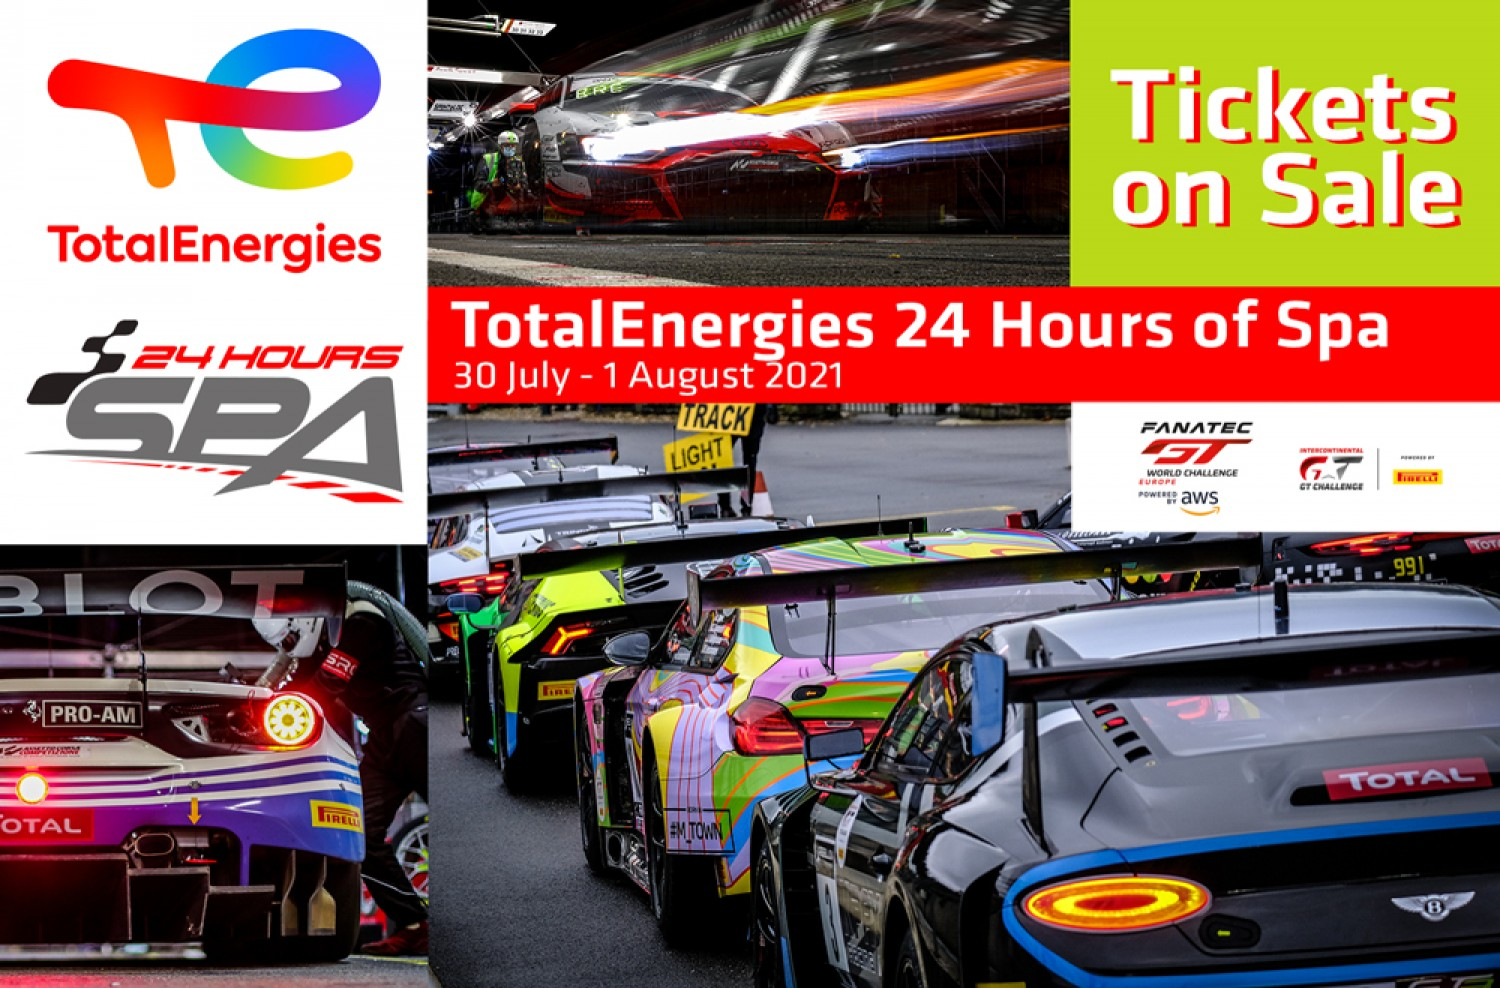 Tickets on sale now for 2021 TotalEnergies 24 Hours of Spa